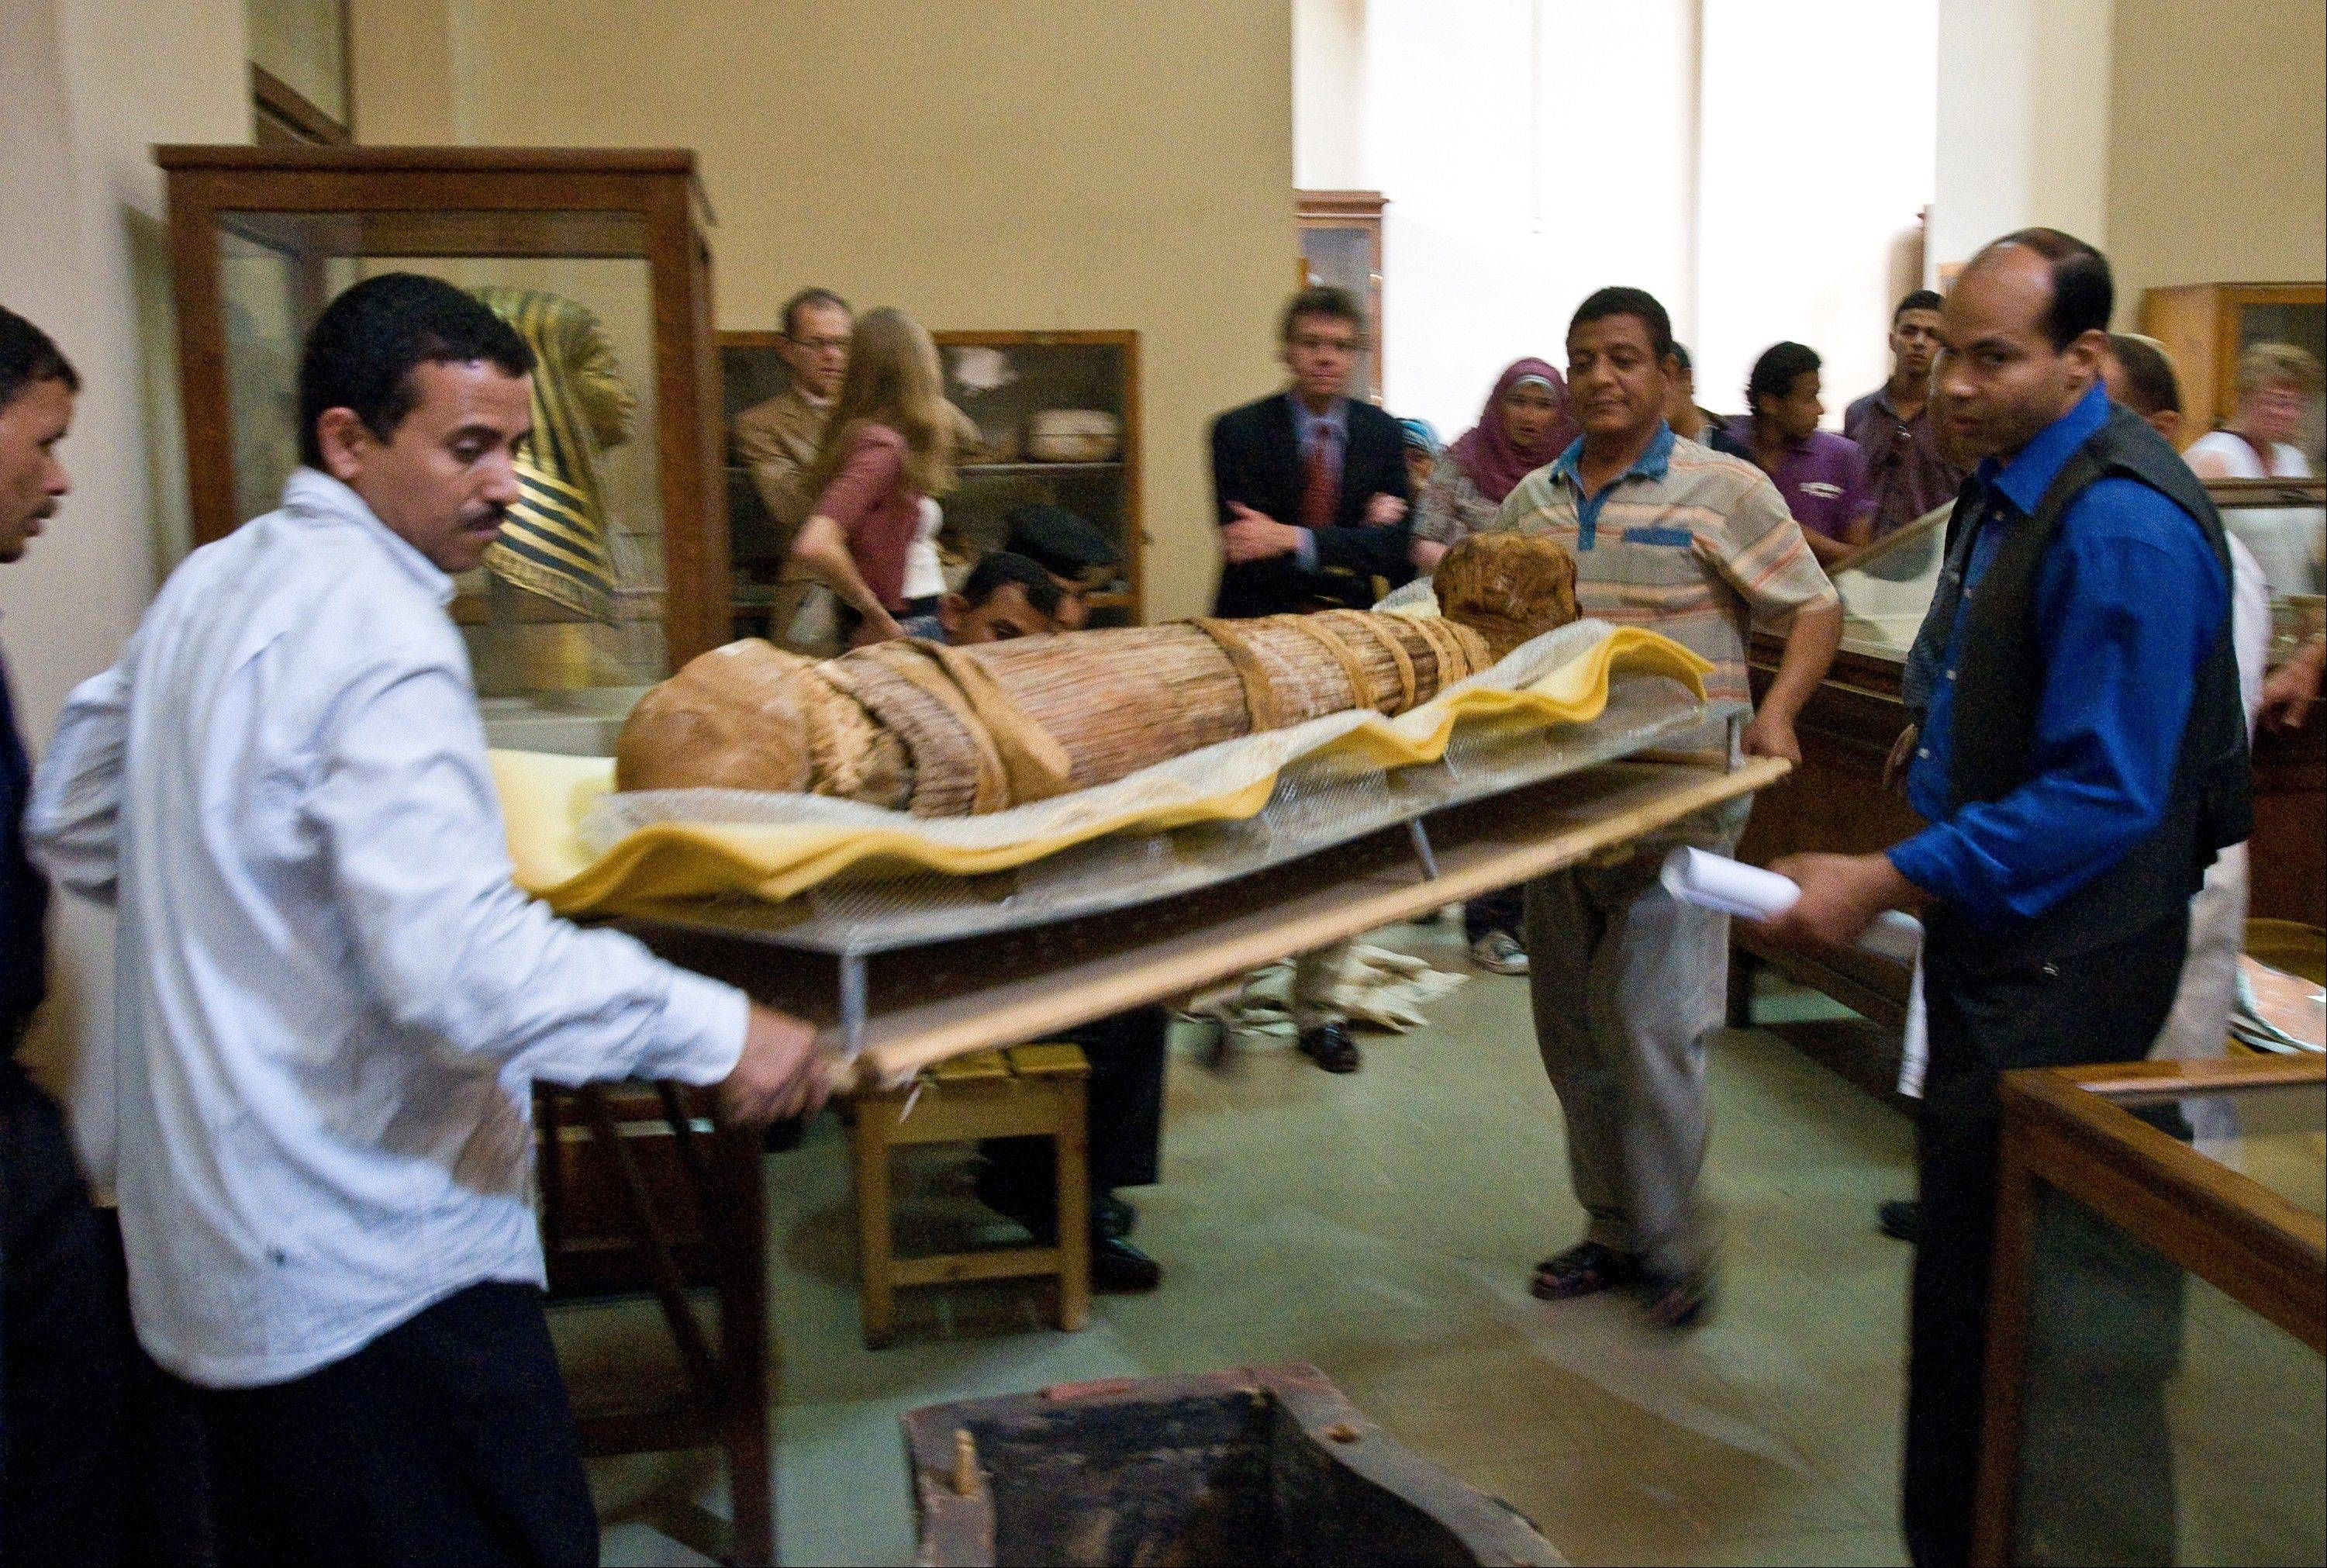 The mummy Hatiay (New Kingdom, 18th Dynasty, 1550 to 1295 BCE) as it is returned to its display back in the Antiquities Museaum in Cairo after it underwent a CT scanning.